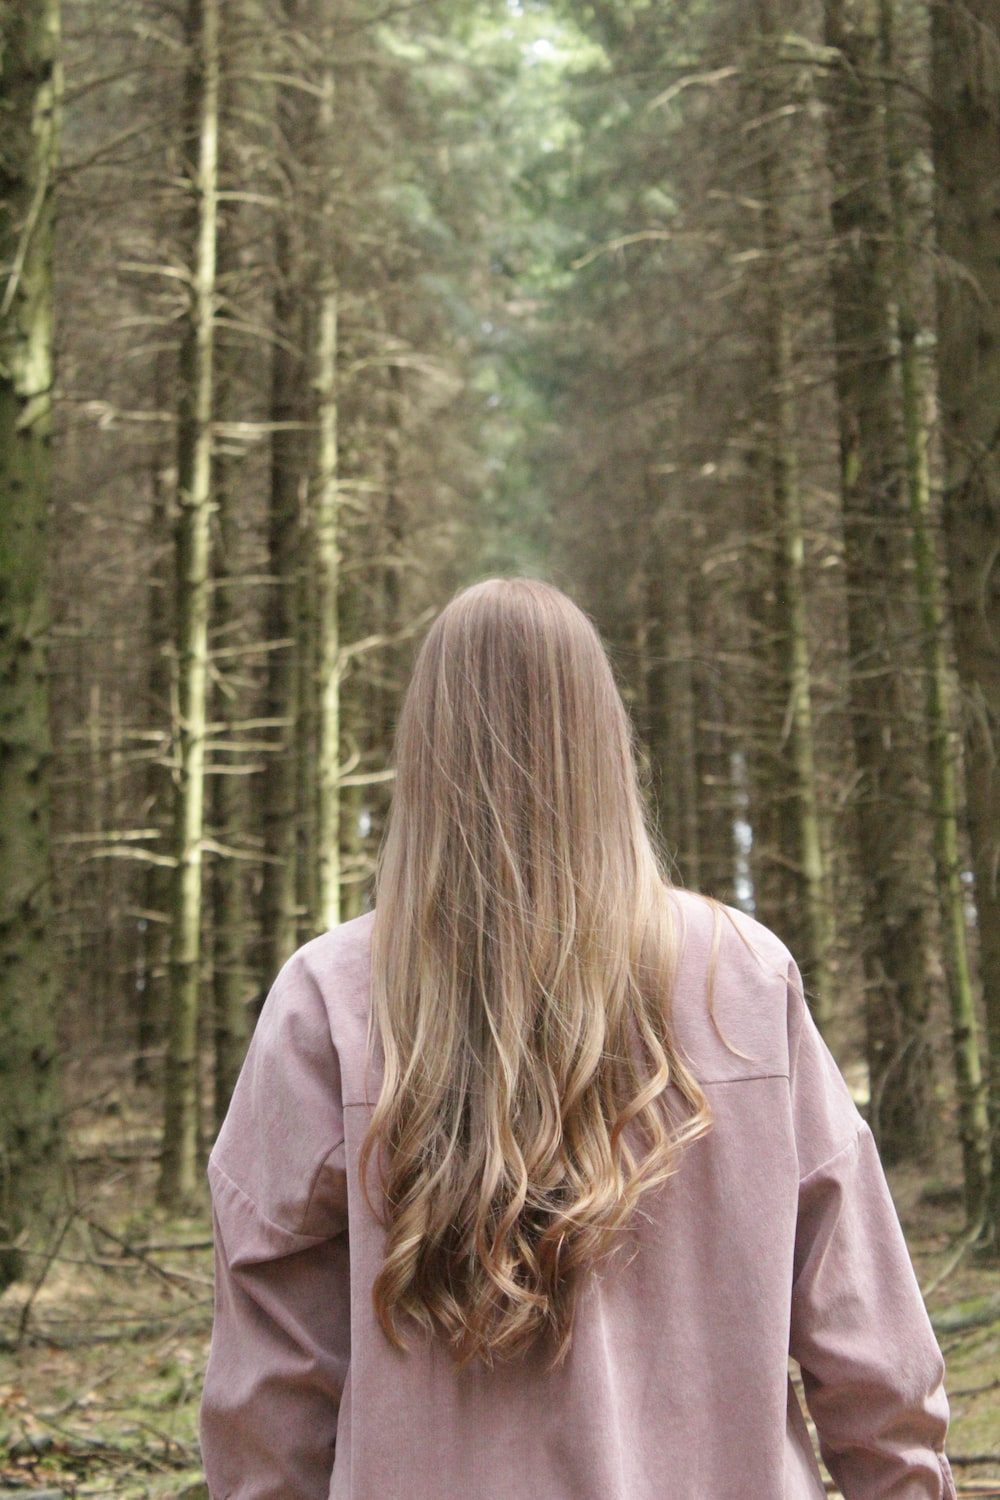 woman in brown hoodie standing in forest during daytime